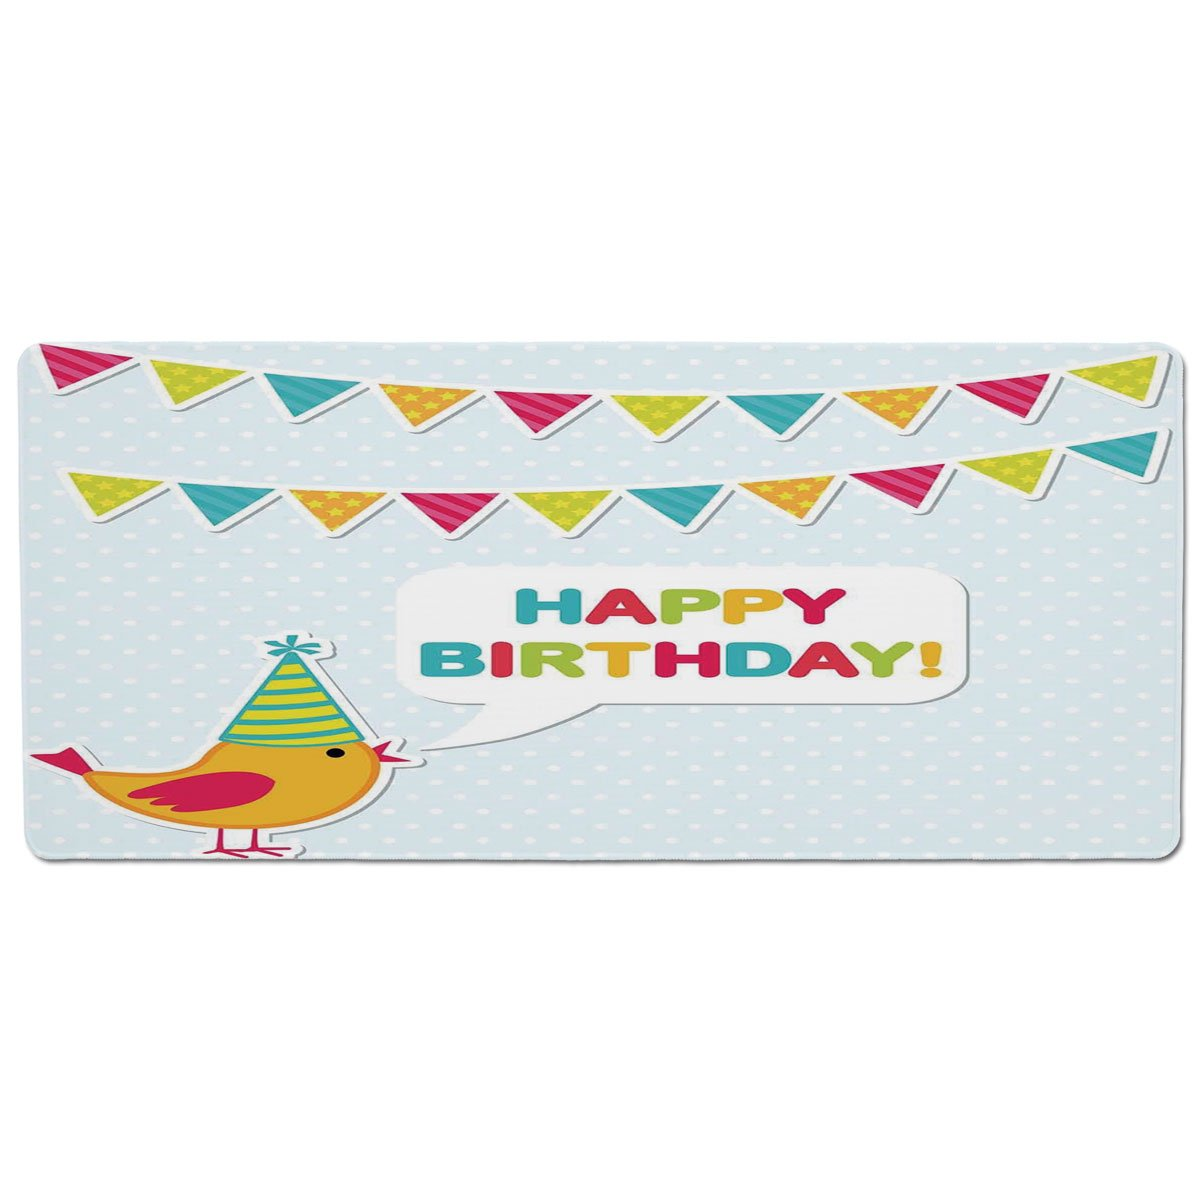 35.4\ iPrint Pet Mat for Food and Water,Birthday Decorations for Kids,Two Row Party Flag Cartoon Bird Happy Birthday Quote Image,Multicolor,Rectangle Non-Slip Rubber Mat for Dogs and Cats